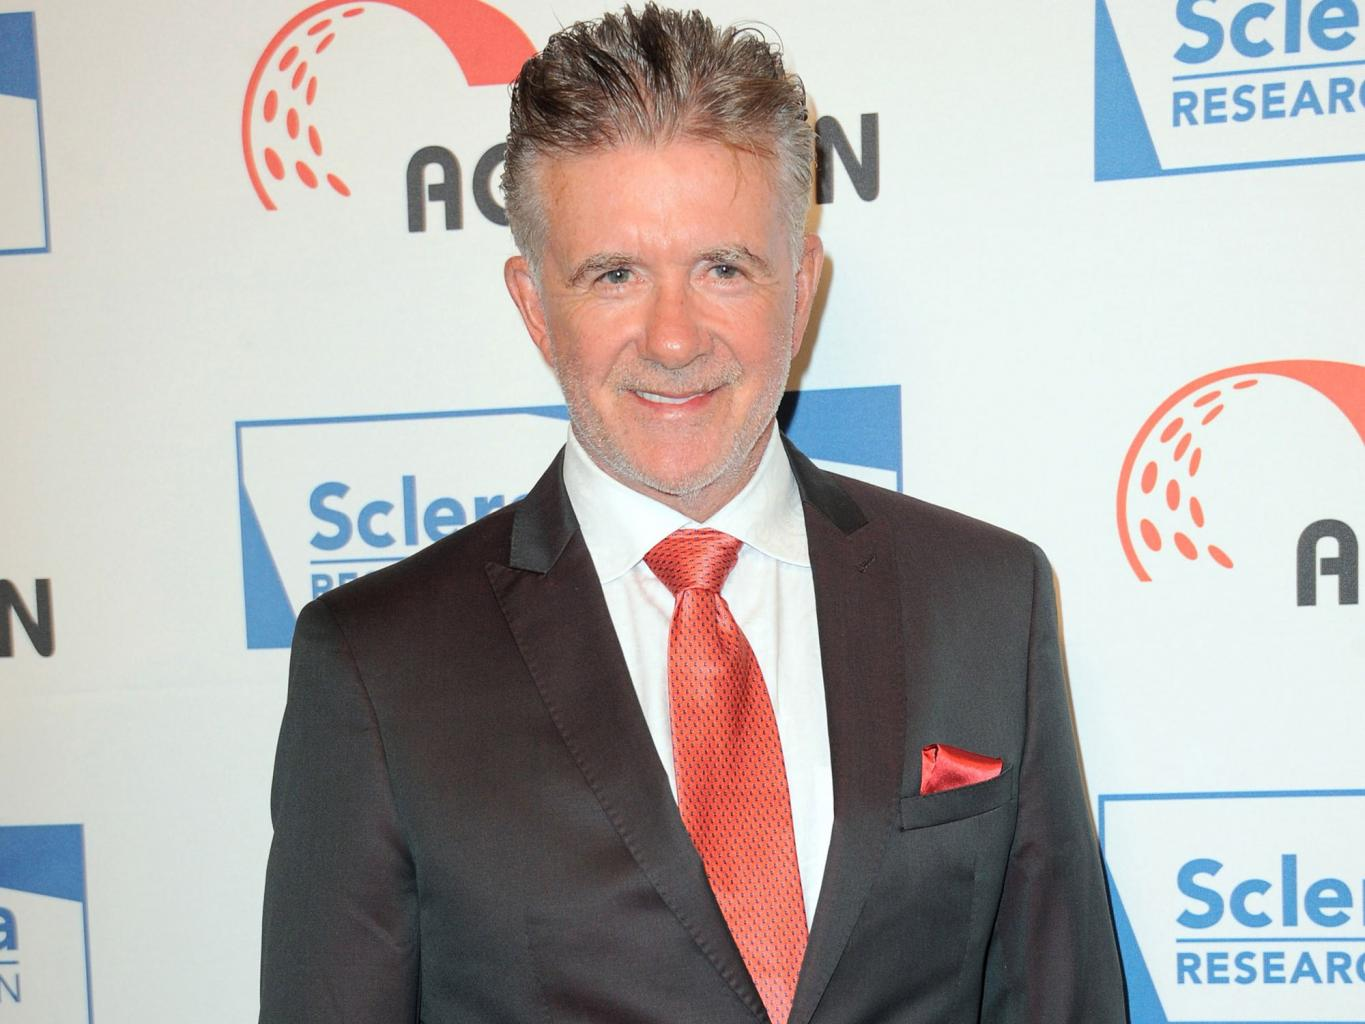 Alan Thicke Remembered by Costar Leah Remini: He    Made You Feel at Home